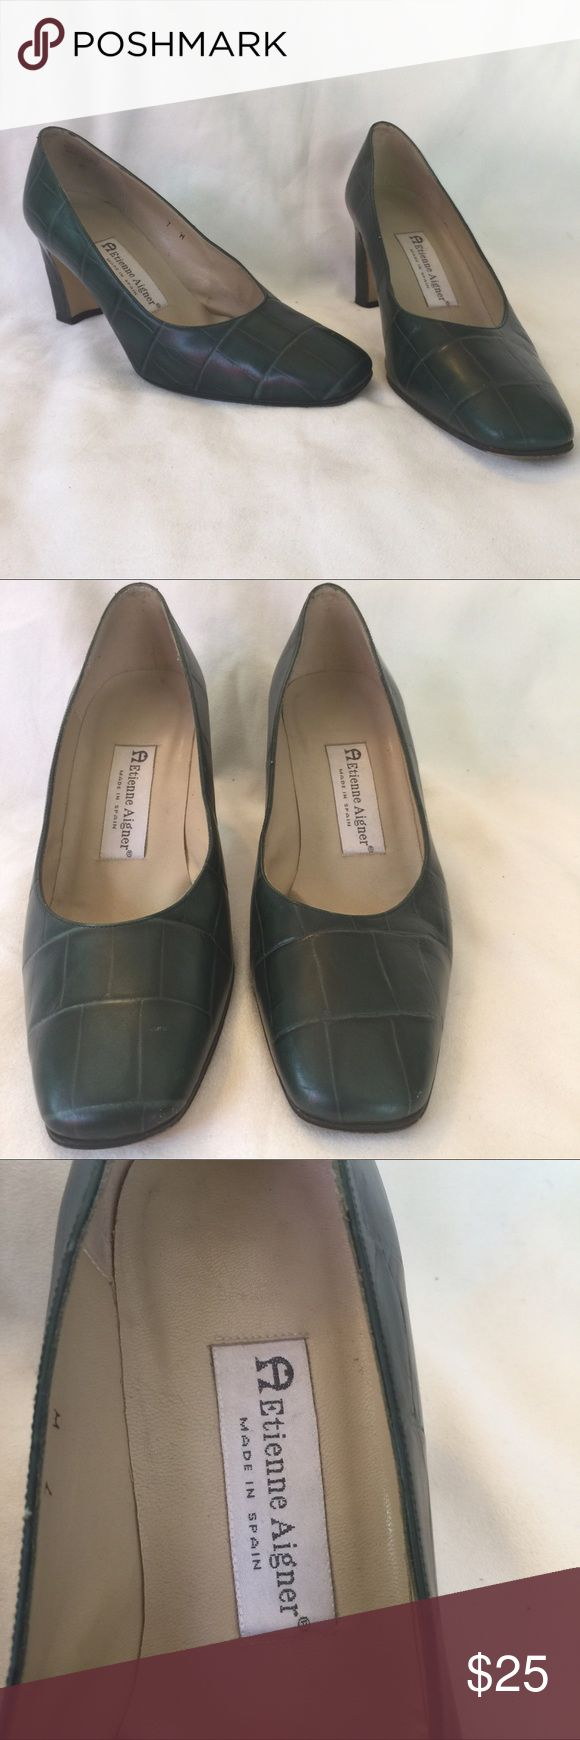 "Etienne Aigner Designer Chunky Heel Leather 7 Gorgeous chunky heels with a cobblestone design in green. Leather heels by the fabulous Etienne Aigner. Gently worn. Size 7 made in Spain 2.5"" heel. Etienne Aigner Shoes Heels"